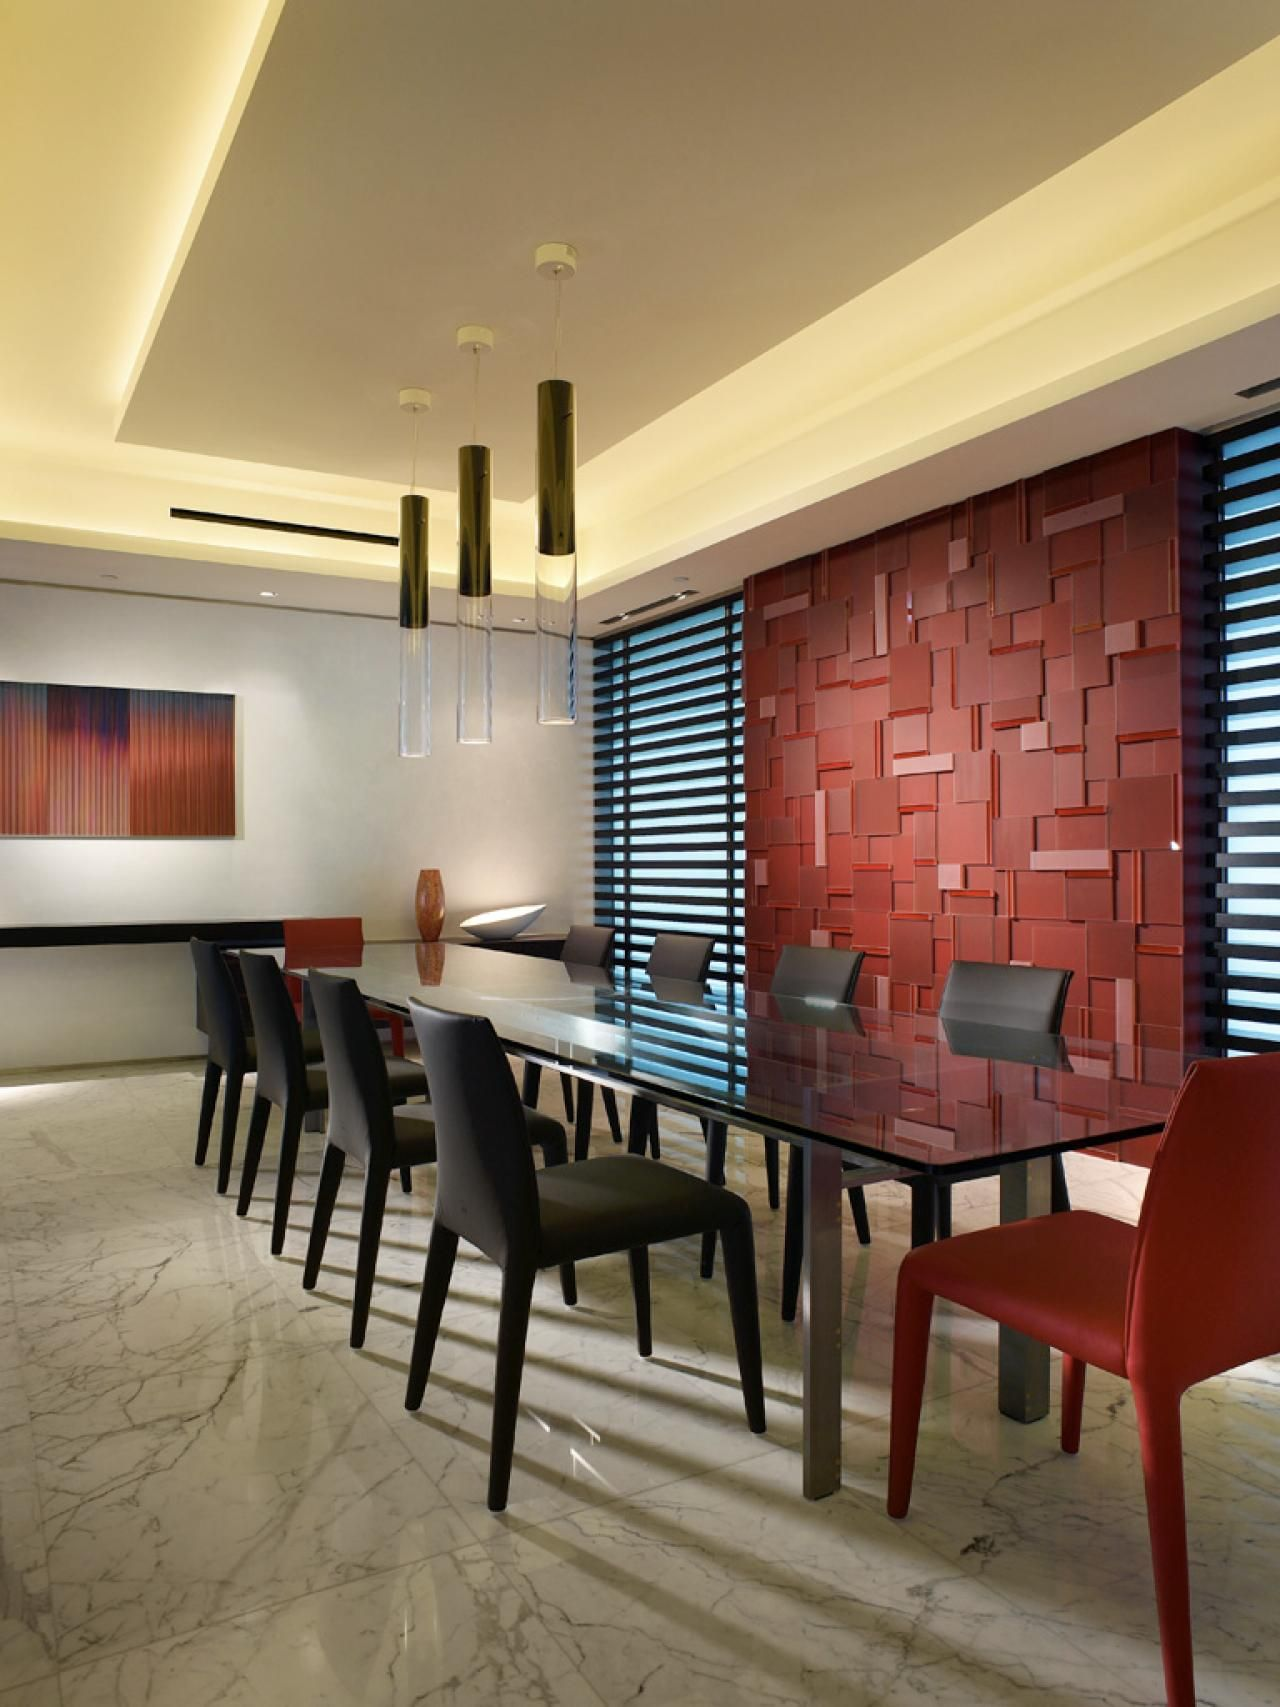 This Modern Dining Room Has A Sculptural Red Glass Feature Wall Amazing Red Wall Dining Room Design Ideas